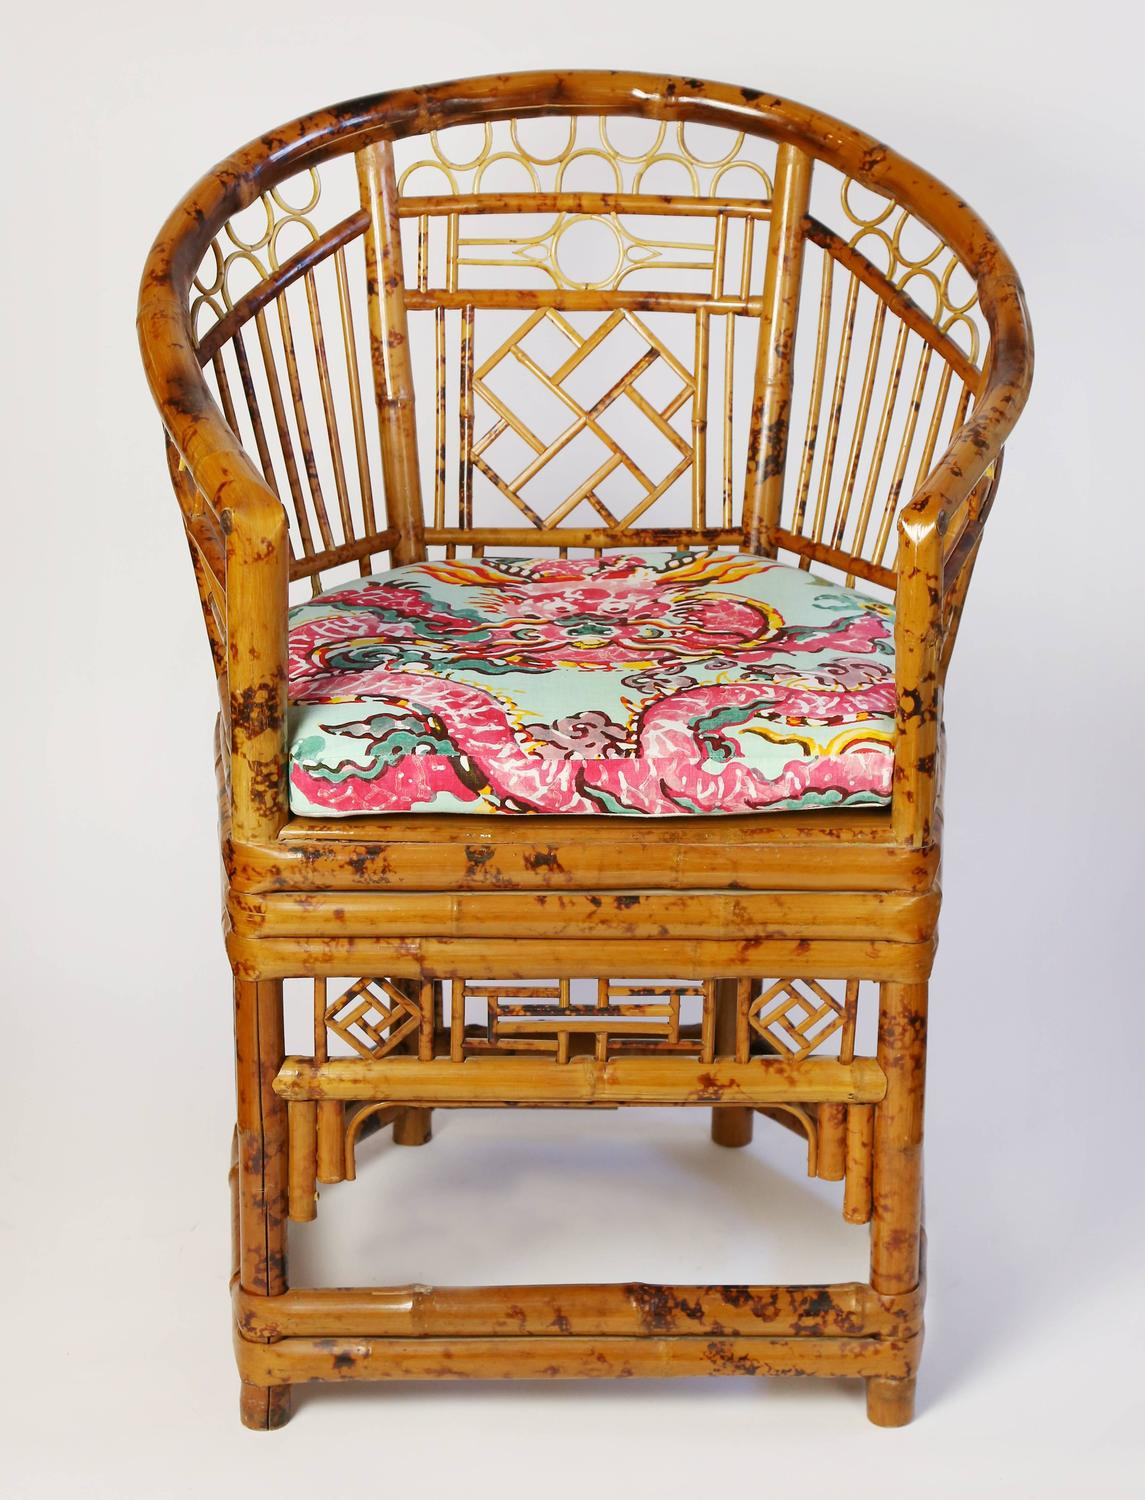 bamboo chairs for sale fisher high chair pair of brighton pavilion chinoiserie style